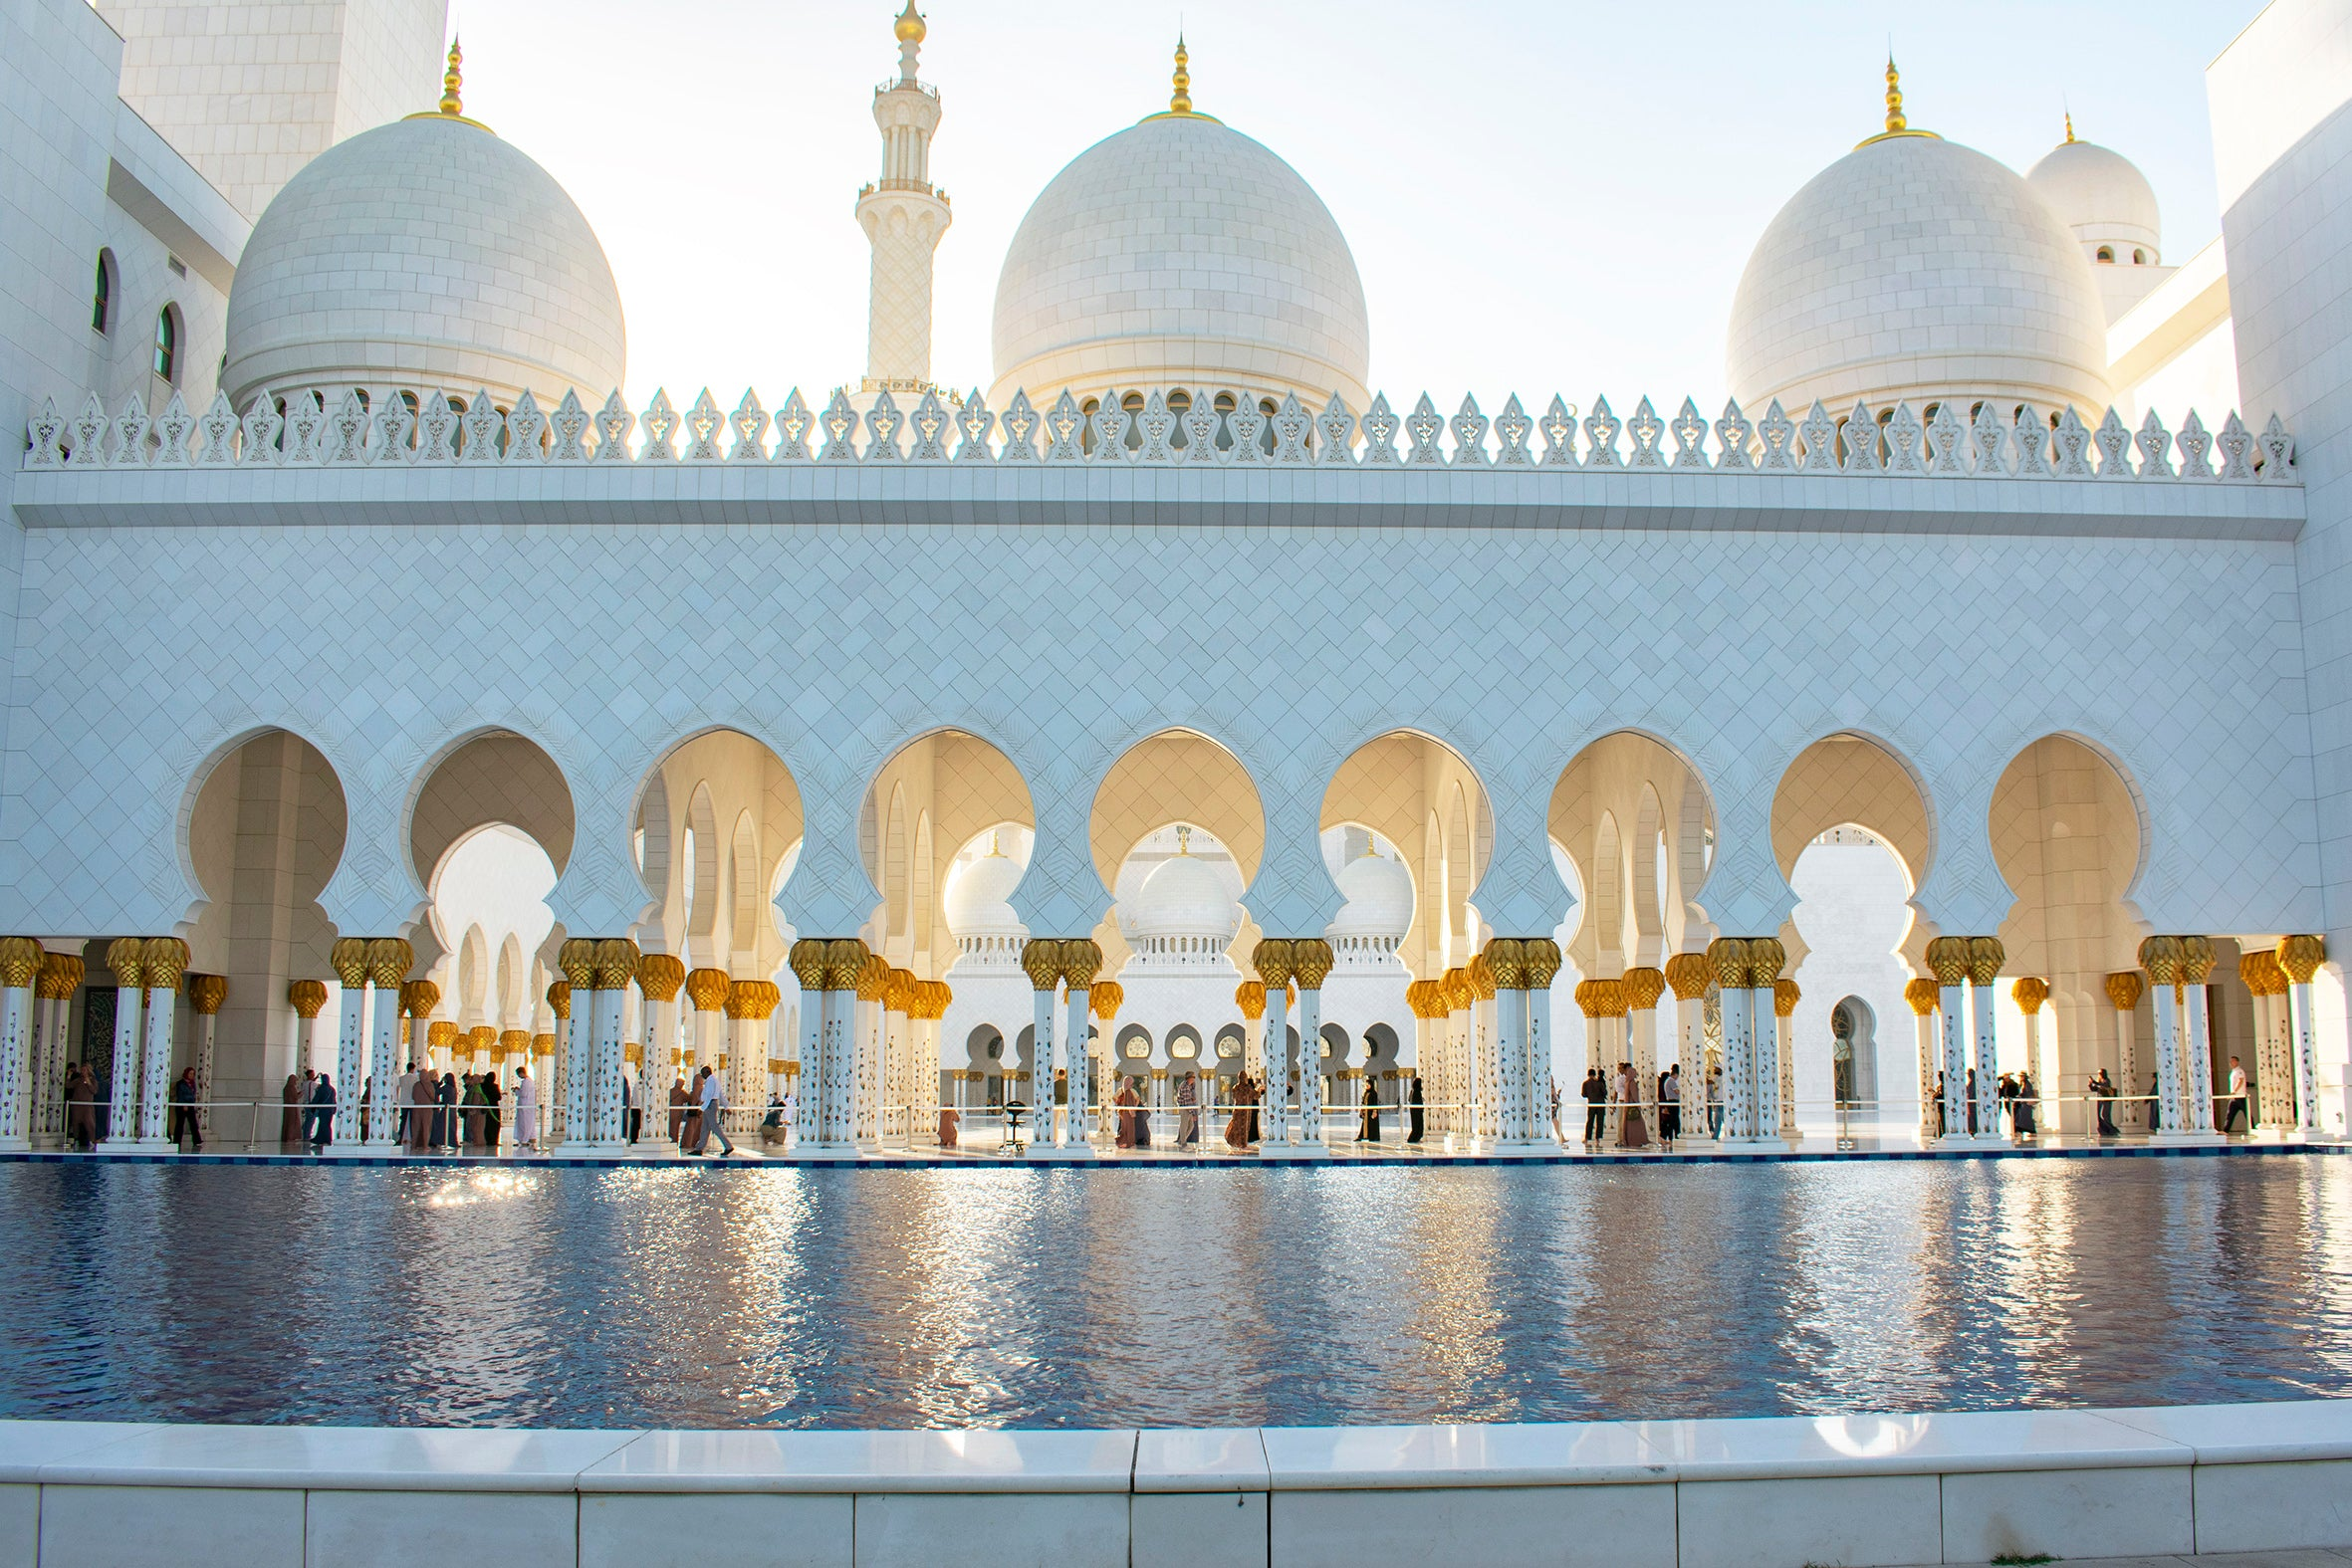 Sheikh Zayed Mosque Abu Dhabi UAE Travel